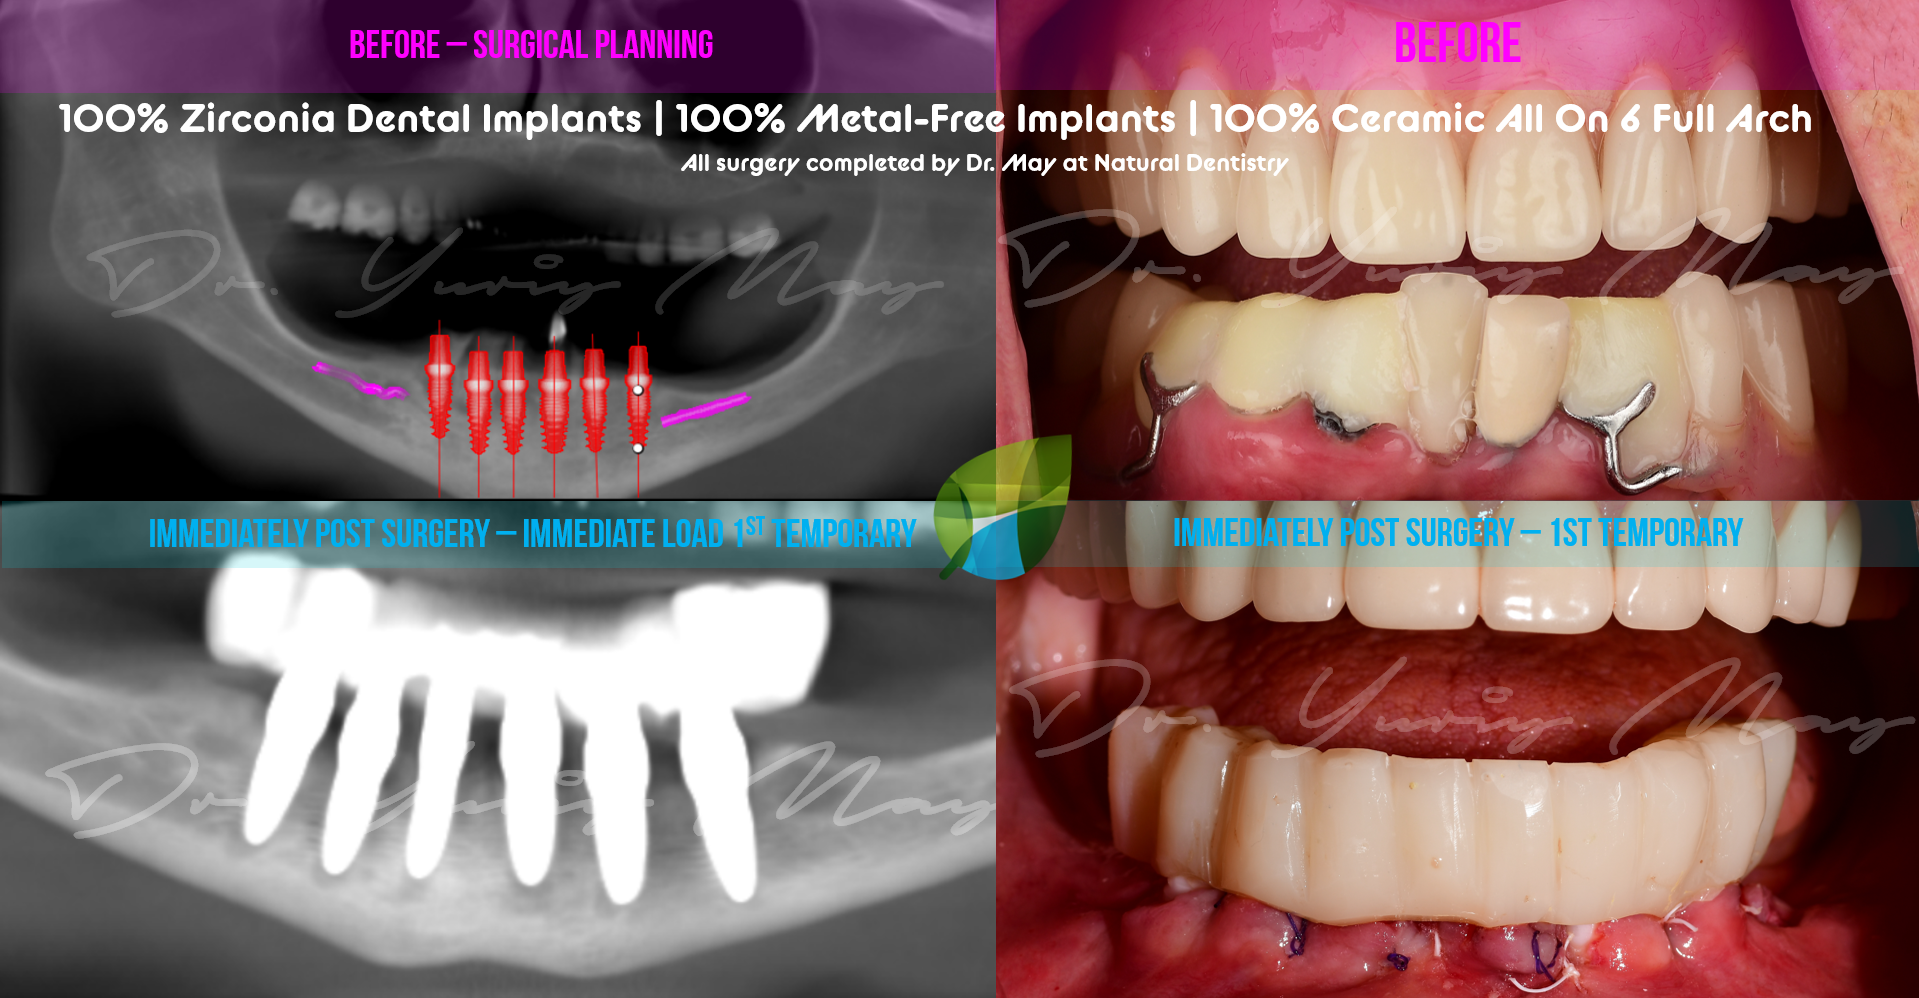 All on 6 Ceramic Implants Zirconia Implants Metal Free